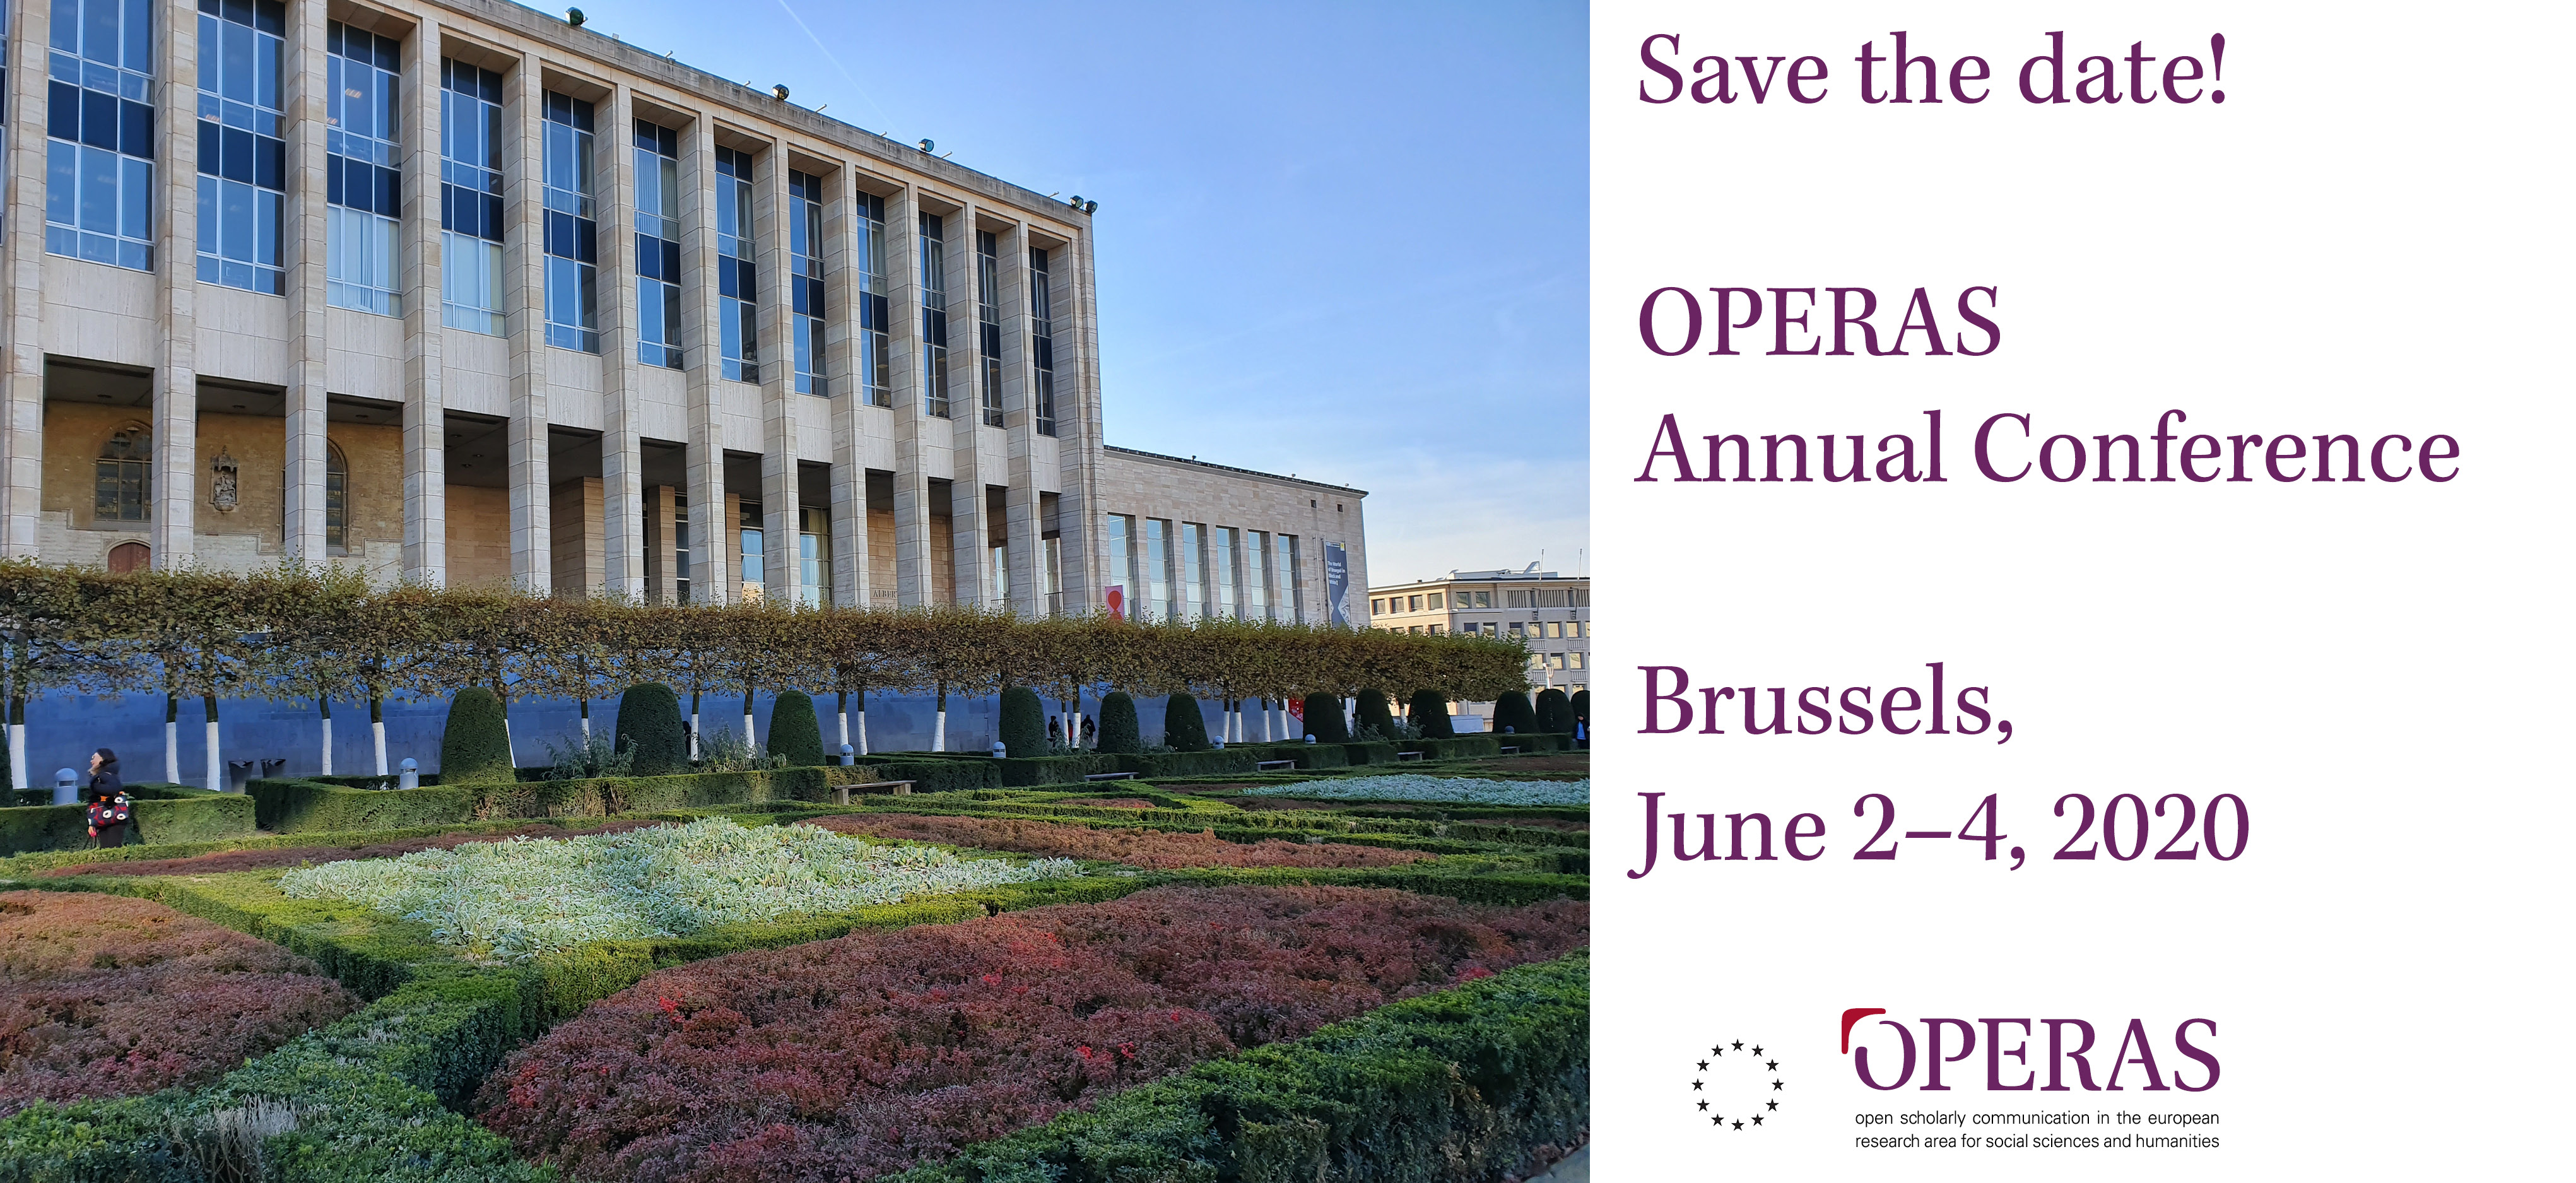 OPERAS Save the date